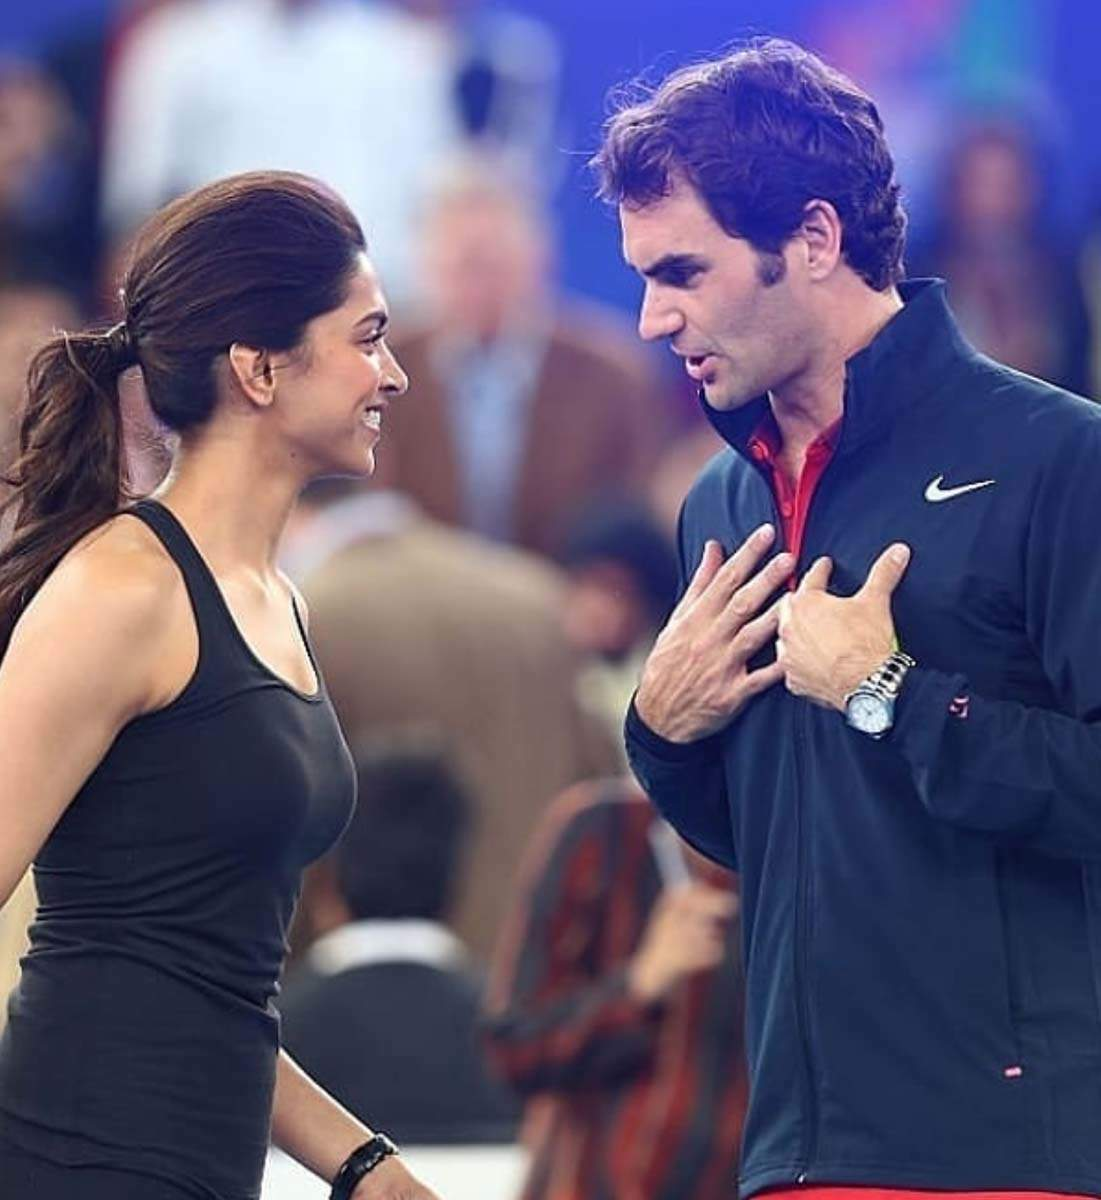 These pictures of Deepika Padukone with tennis star Roger Federer go viral